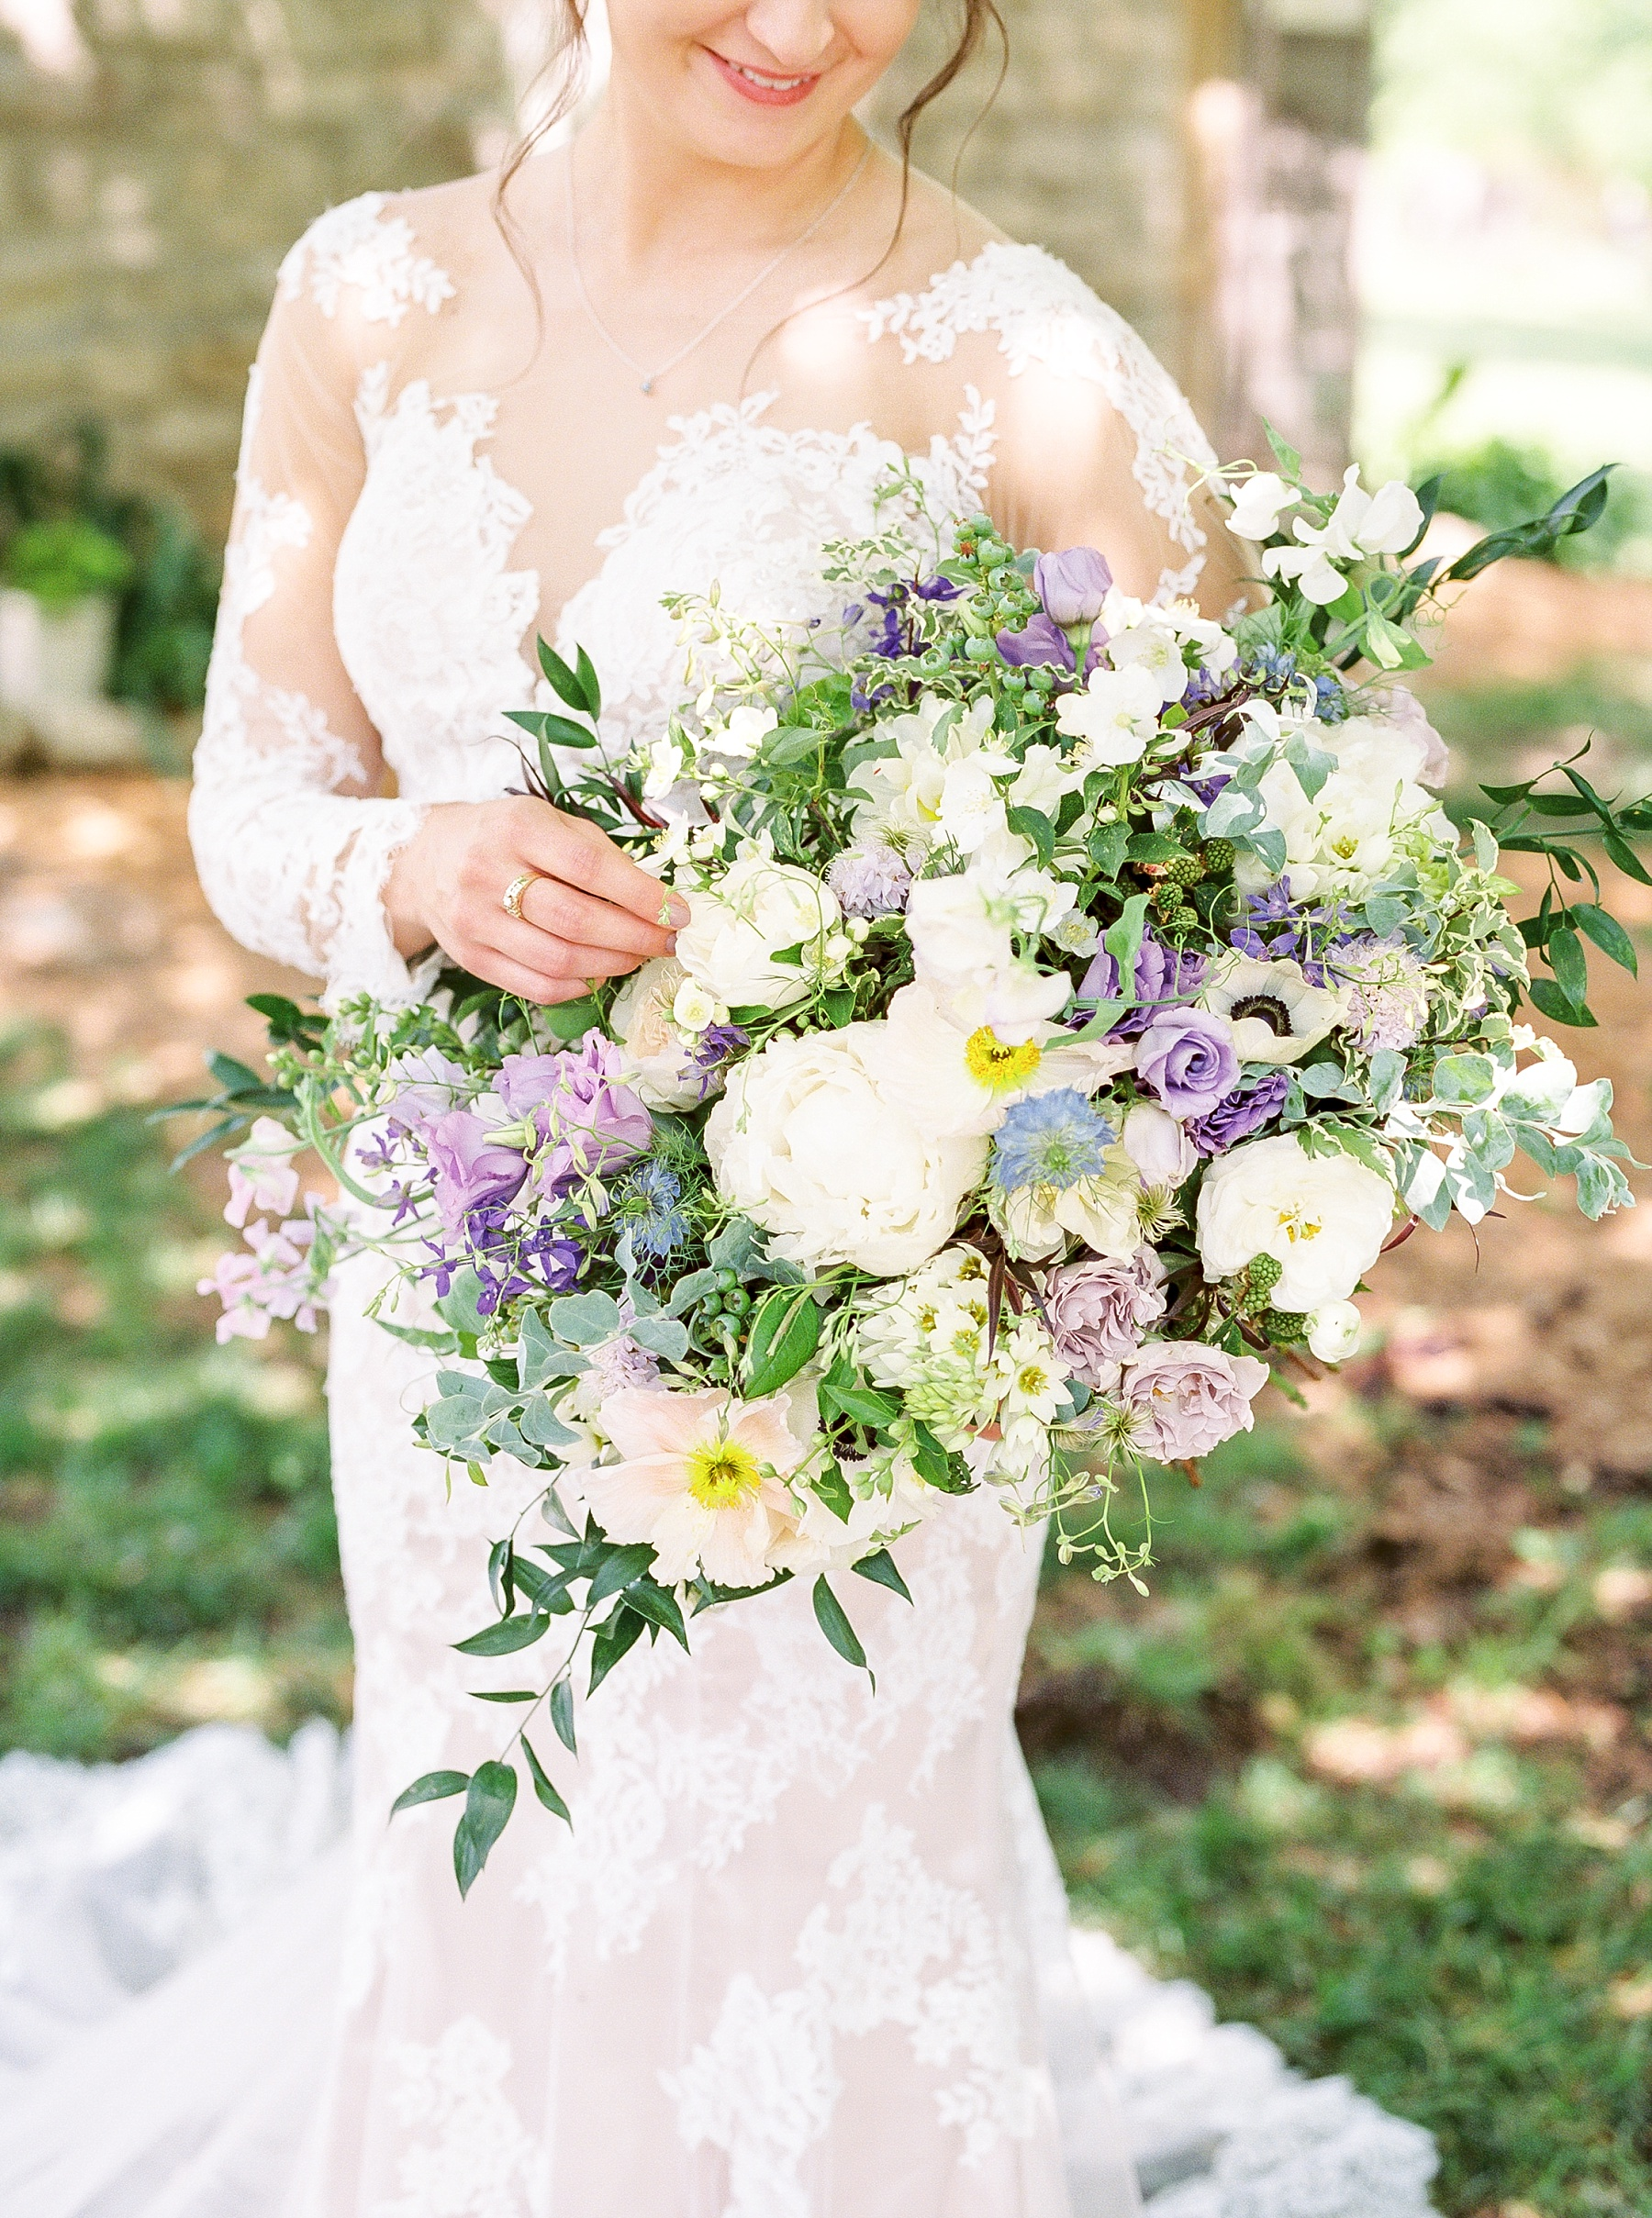 Intimate Mountain Hues Inspired Summer Wedding at Wildcliff Weddings and Events by Kelsi Kliethermes Photography Best Missouri and Maui Wedding Photographer_0051.jpg